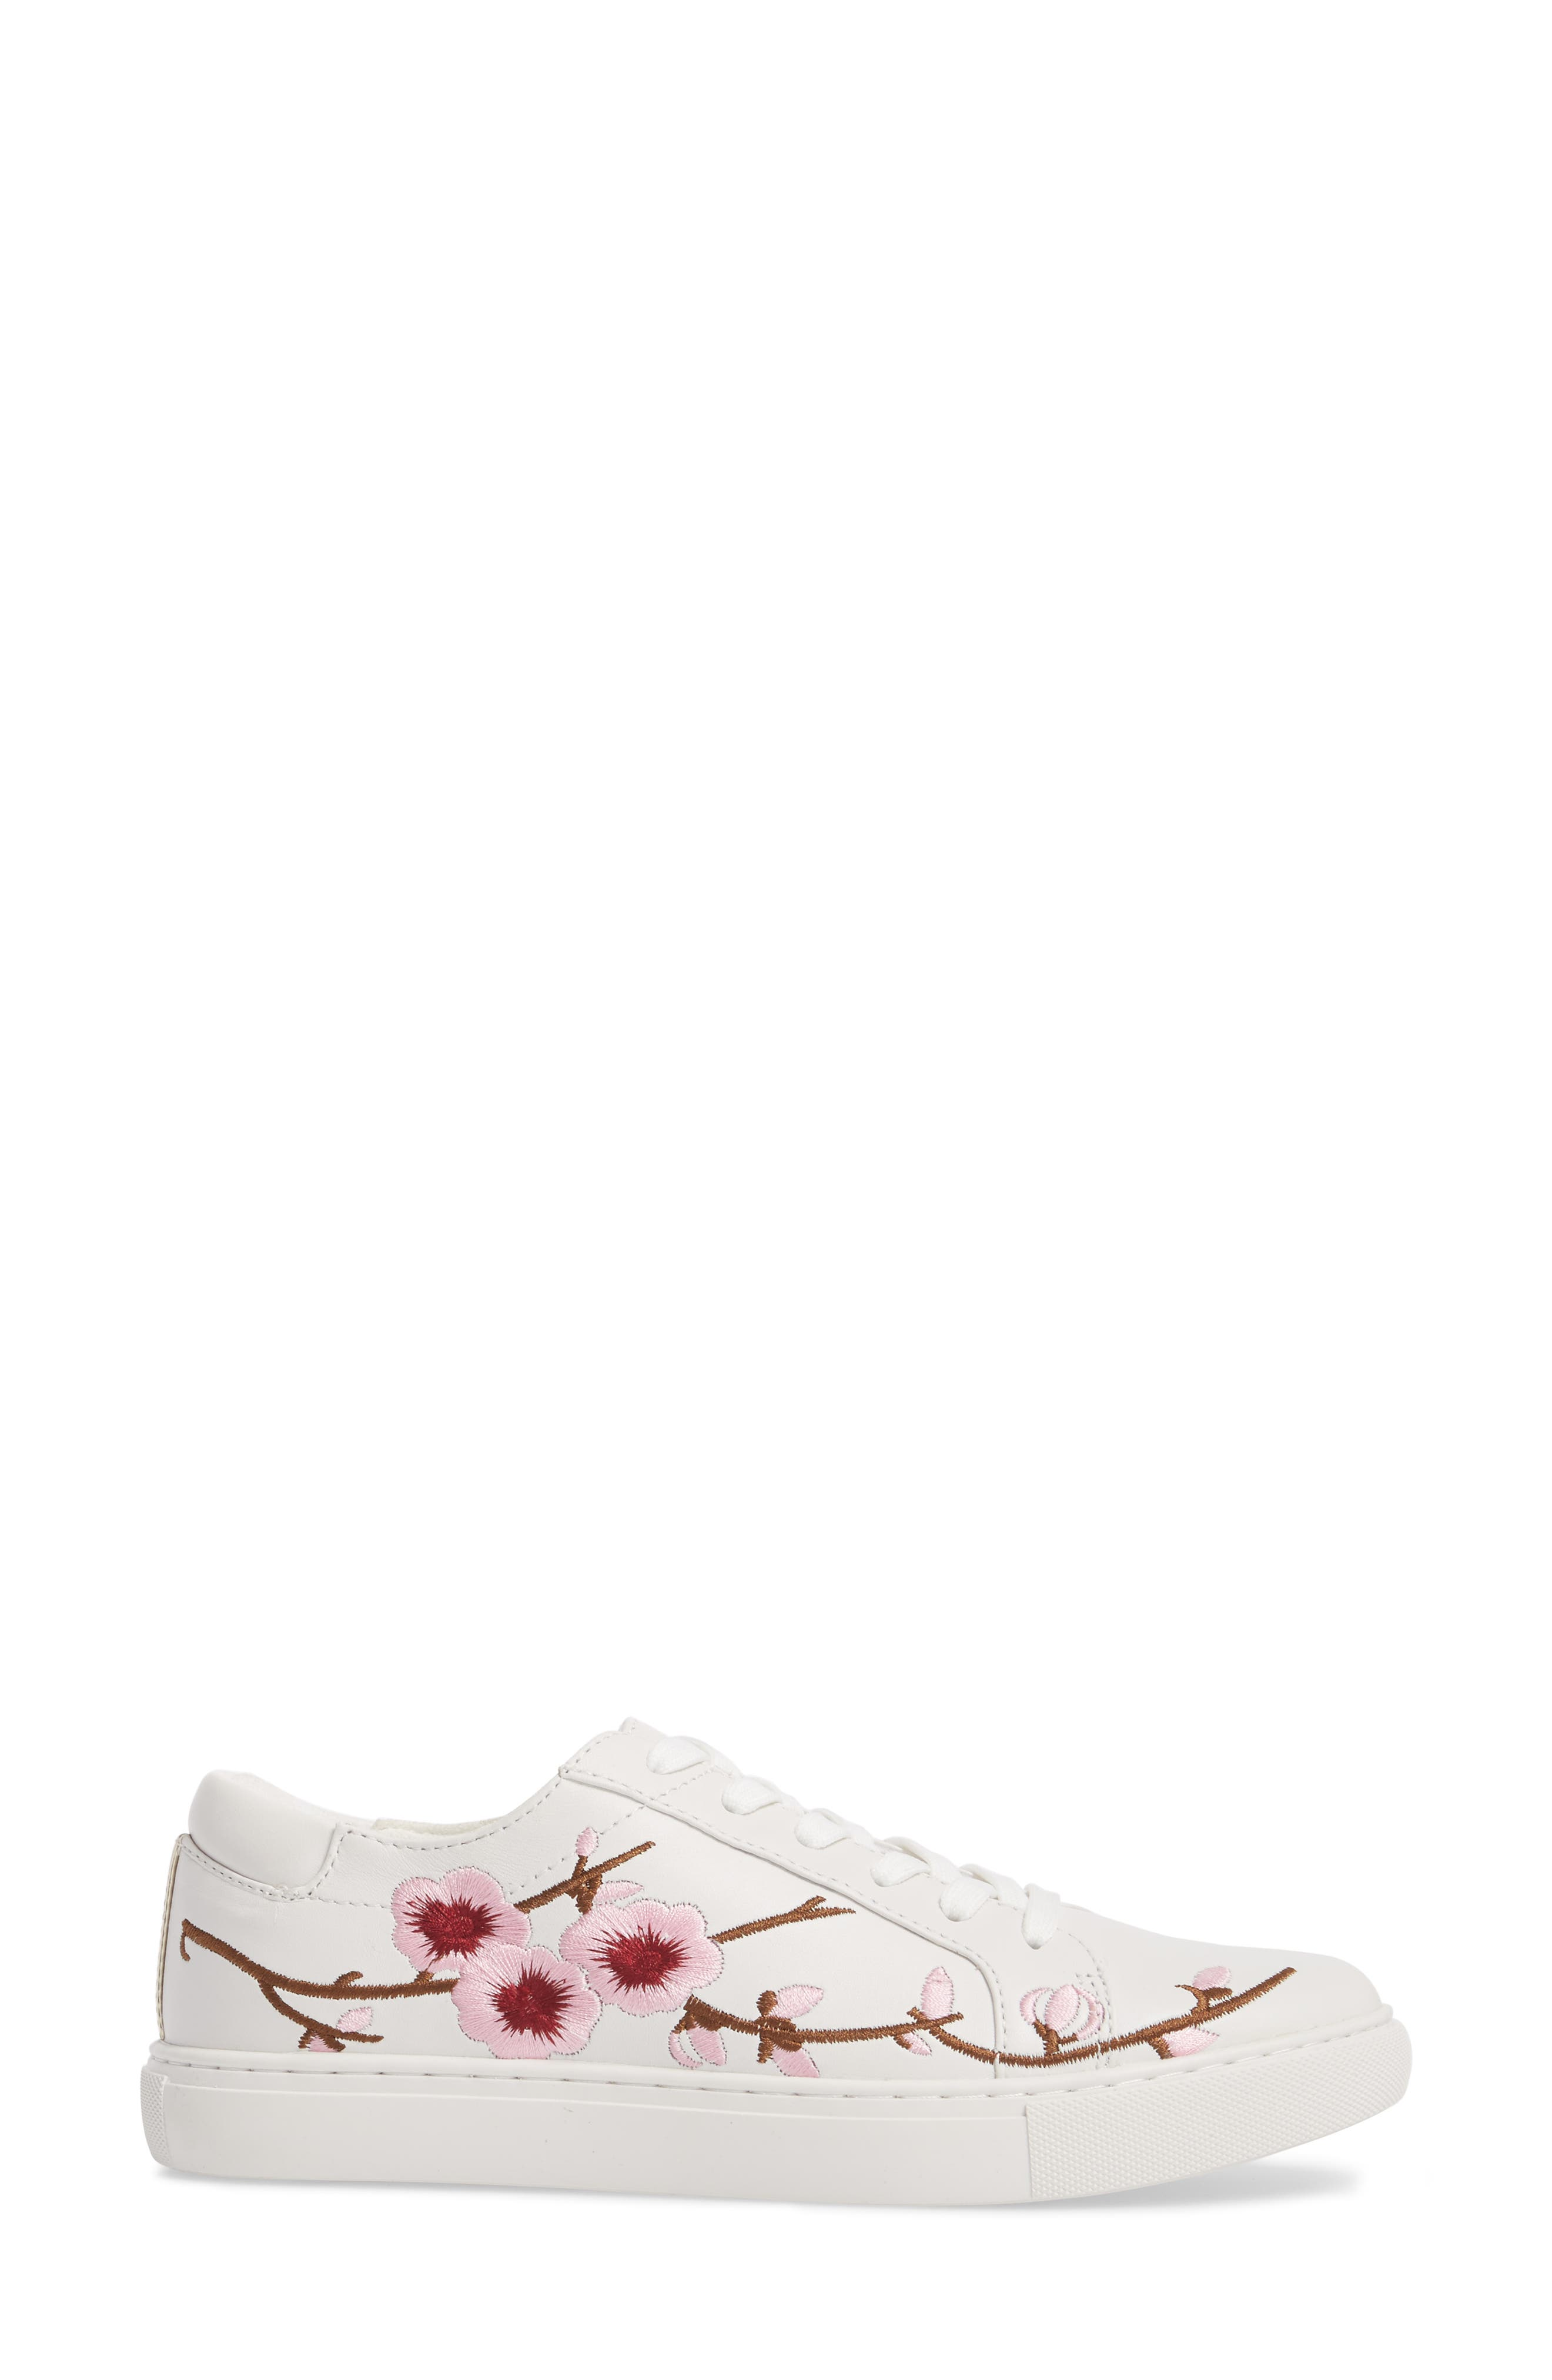 Kam Blossom Embroidered Sneaker,                             Alternate thumbnail 3, color,                             White Leather